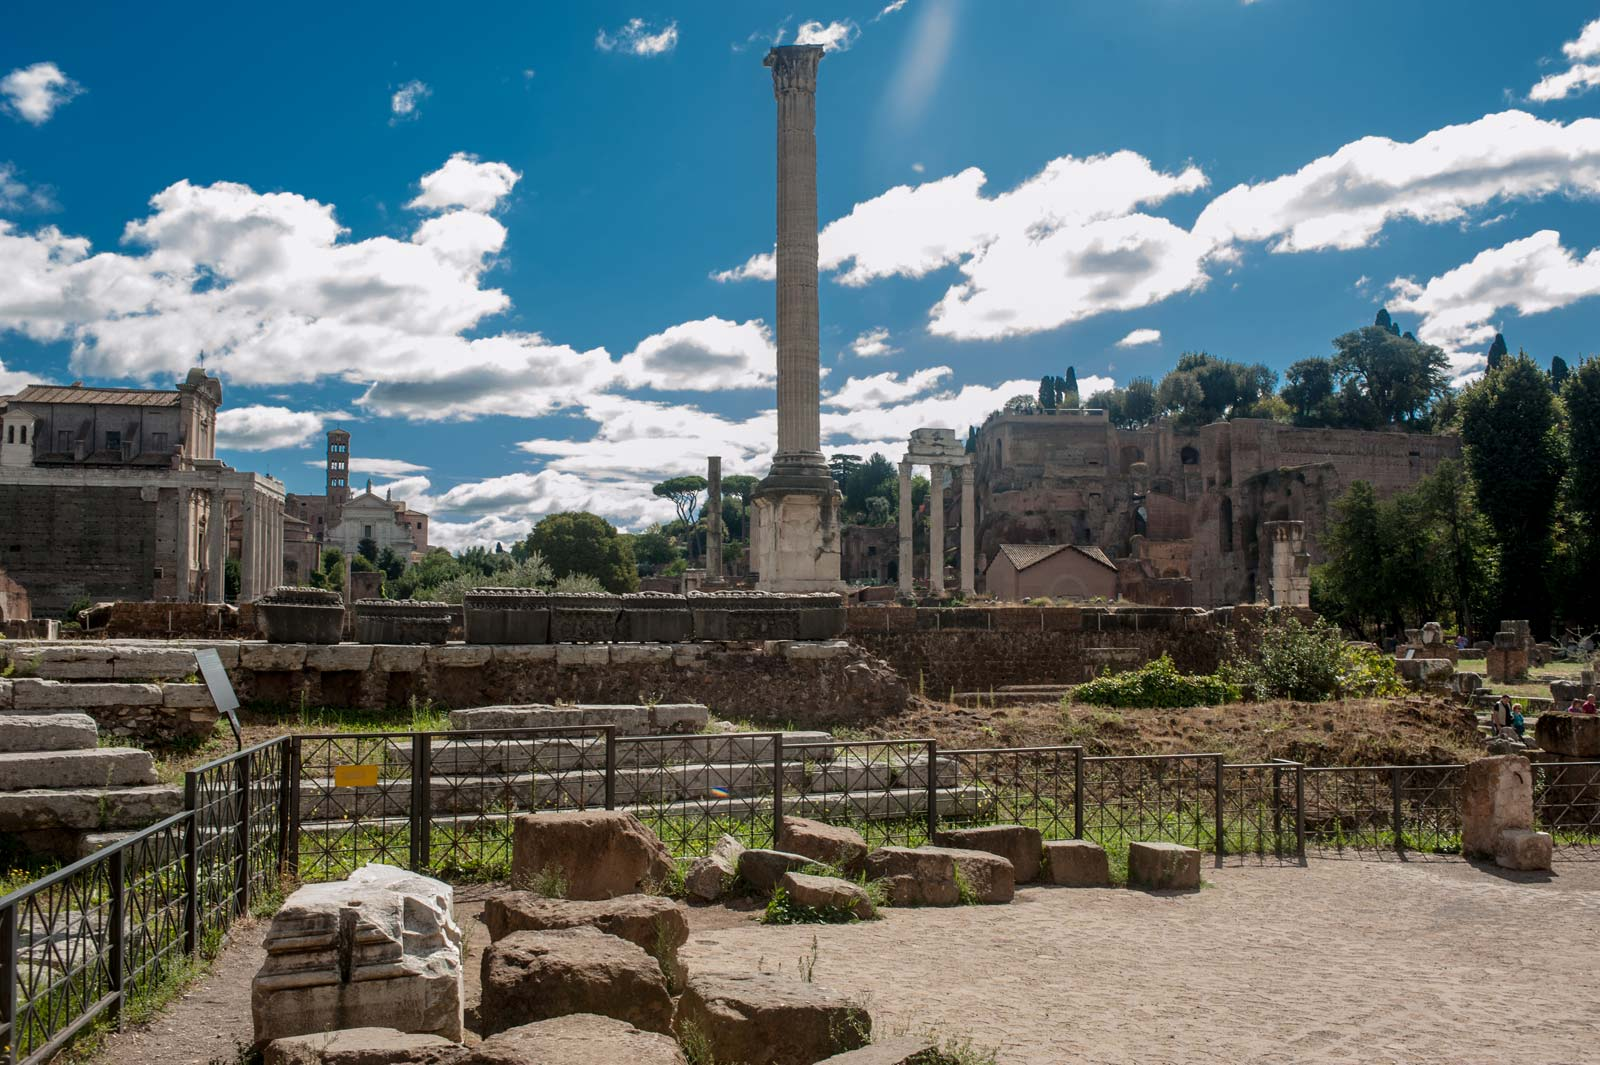 Enjoy Rome - Colosseum Forum and Palatine hill with Arena Floor Access semi-private tour